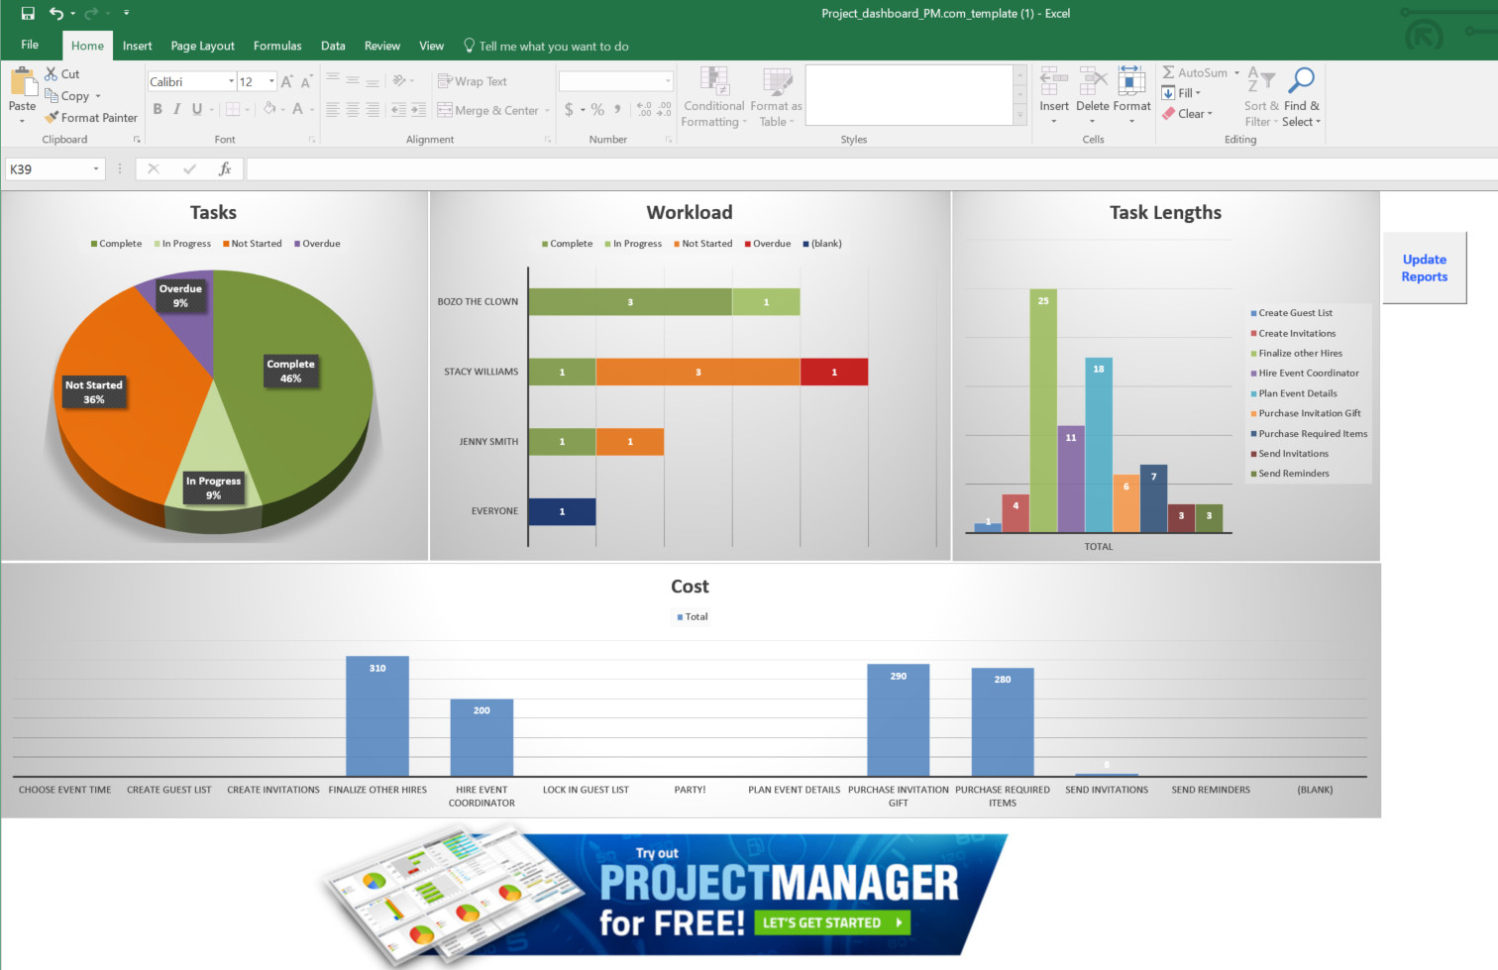 Guide To Excel Project Management   Projectmanager With Downloadable Project Management Templates And Other Resources